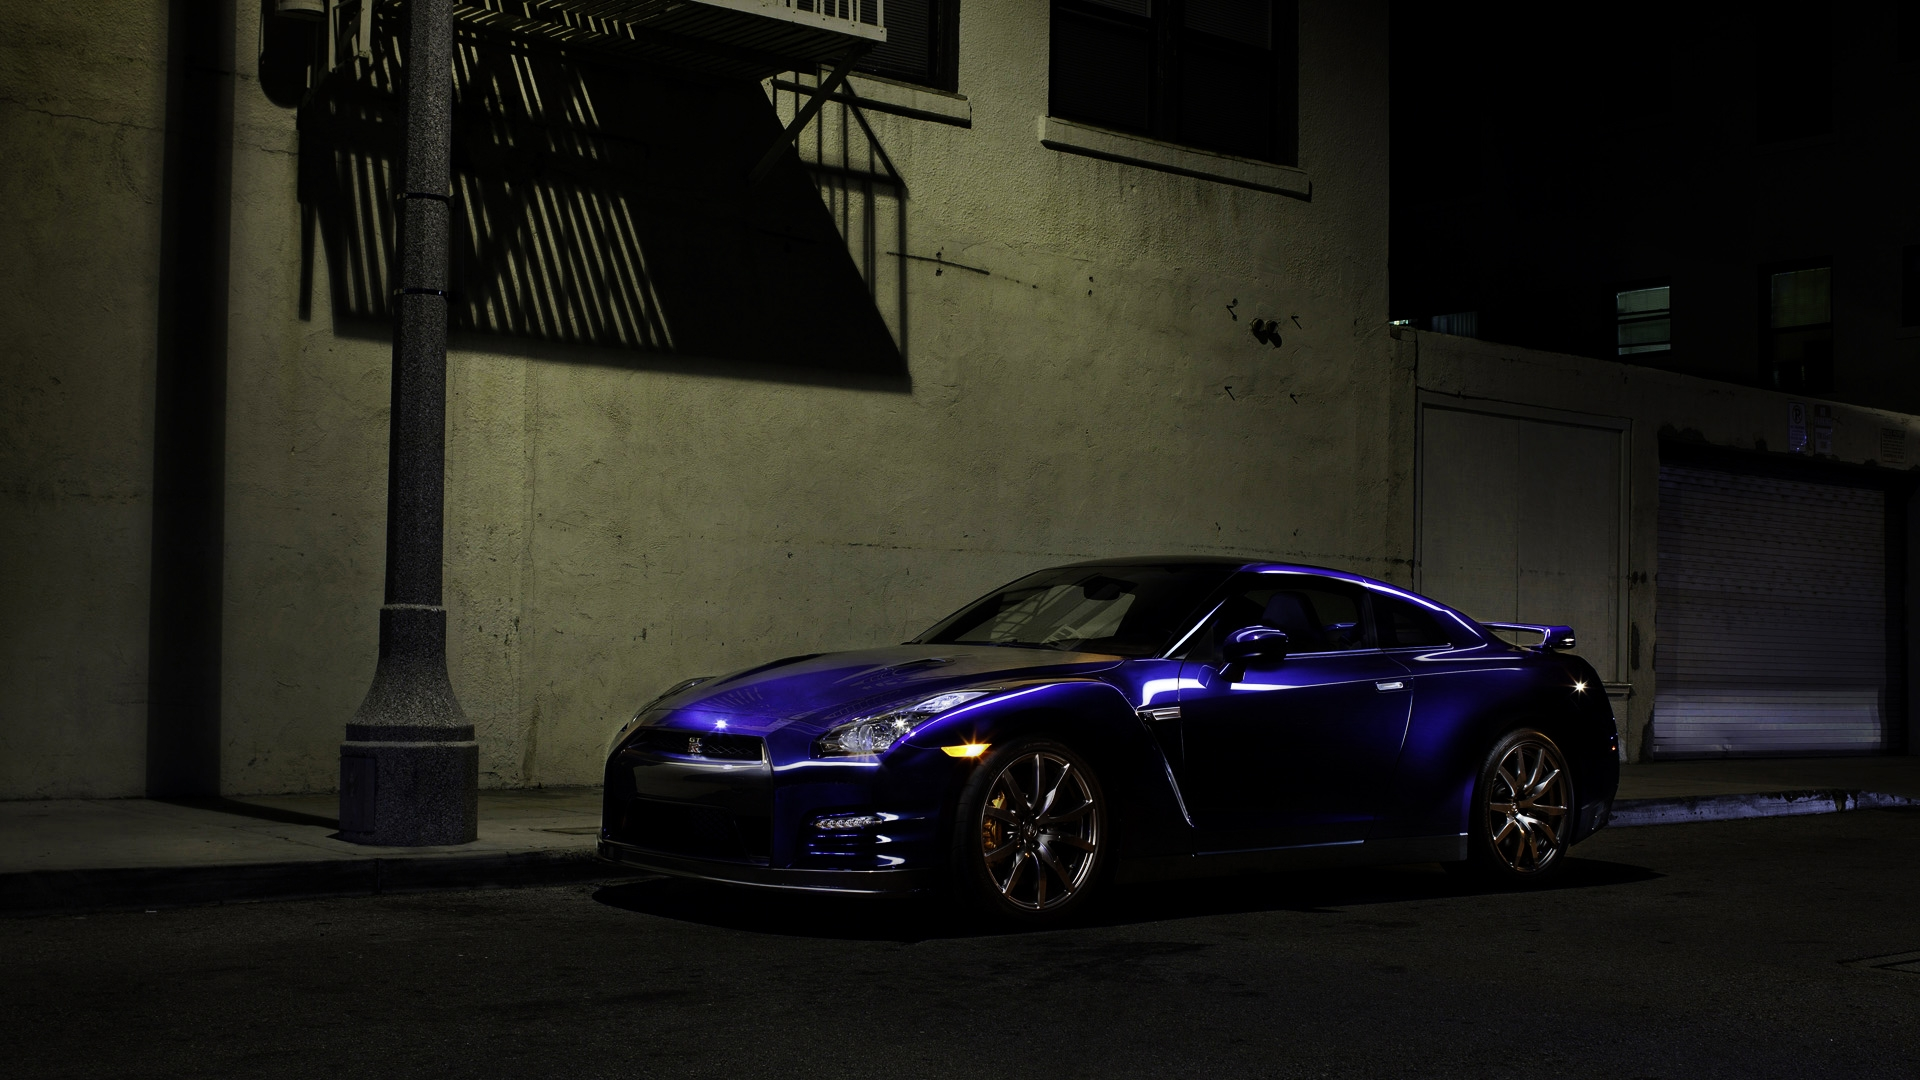 HD Wallpapers nissan gtr 19201080 Cars Background Wallpapers HD 1920x1080